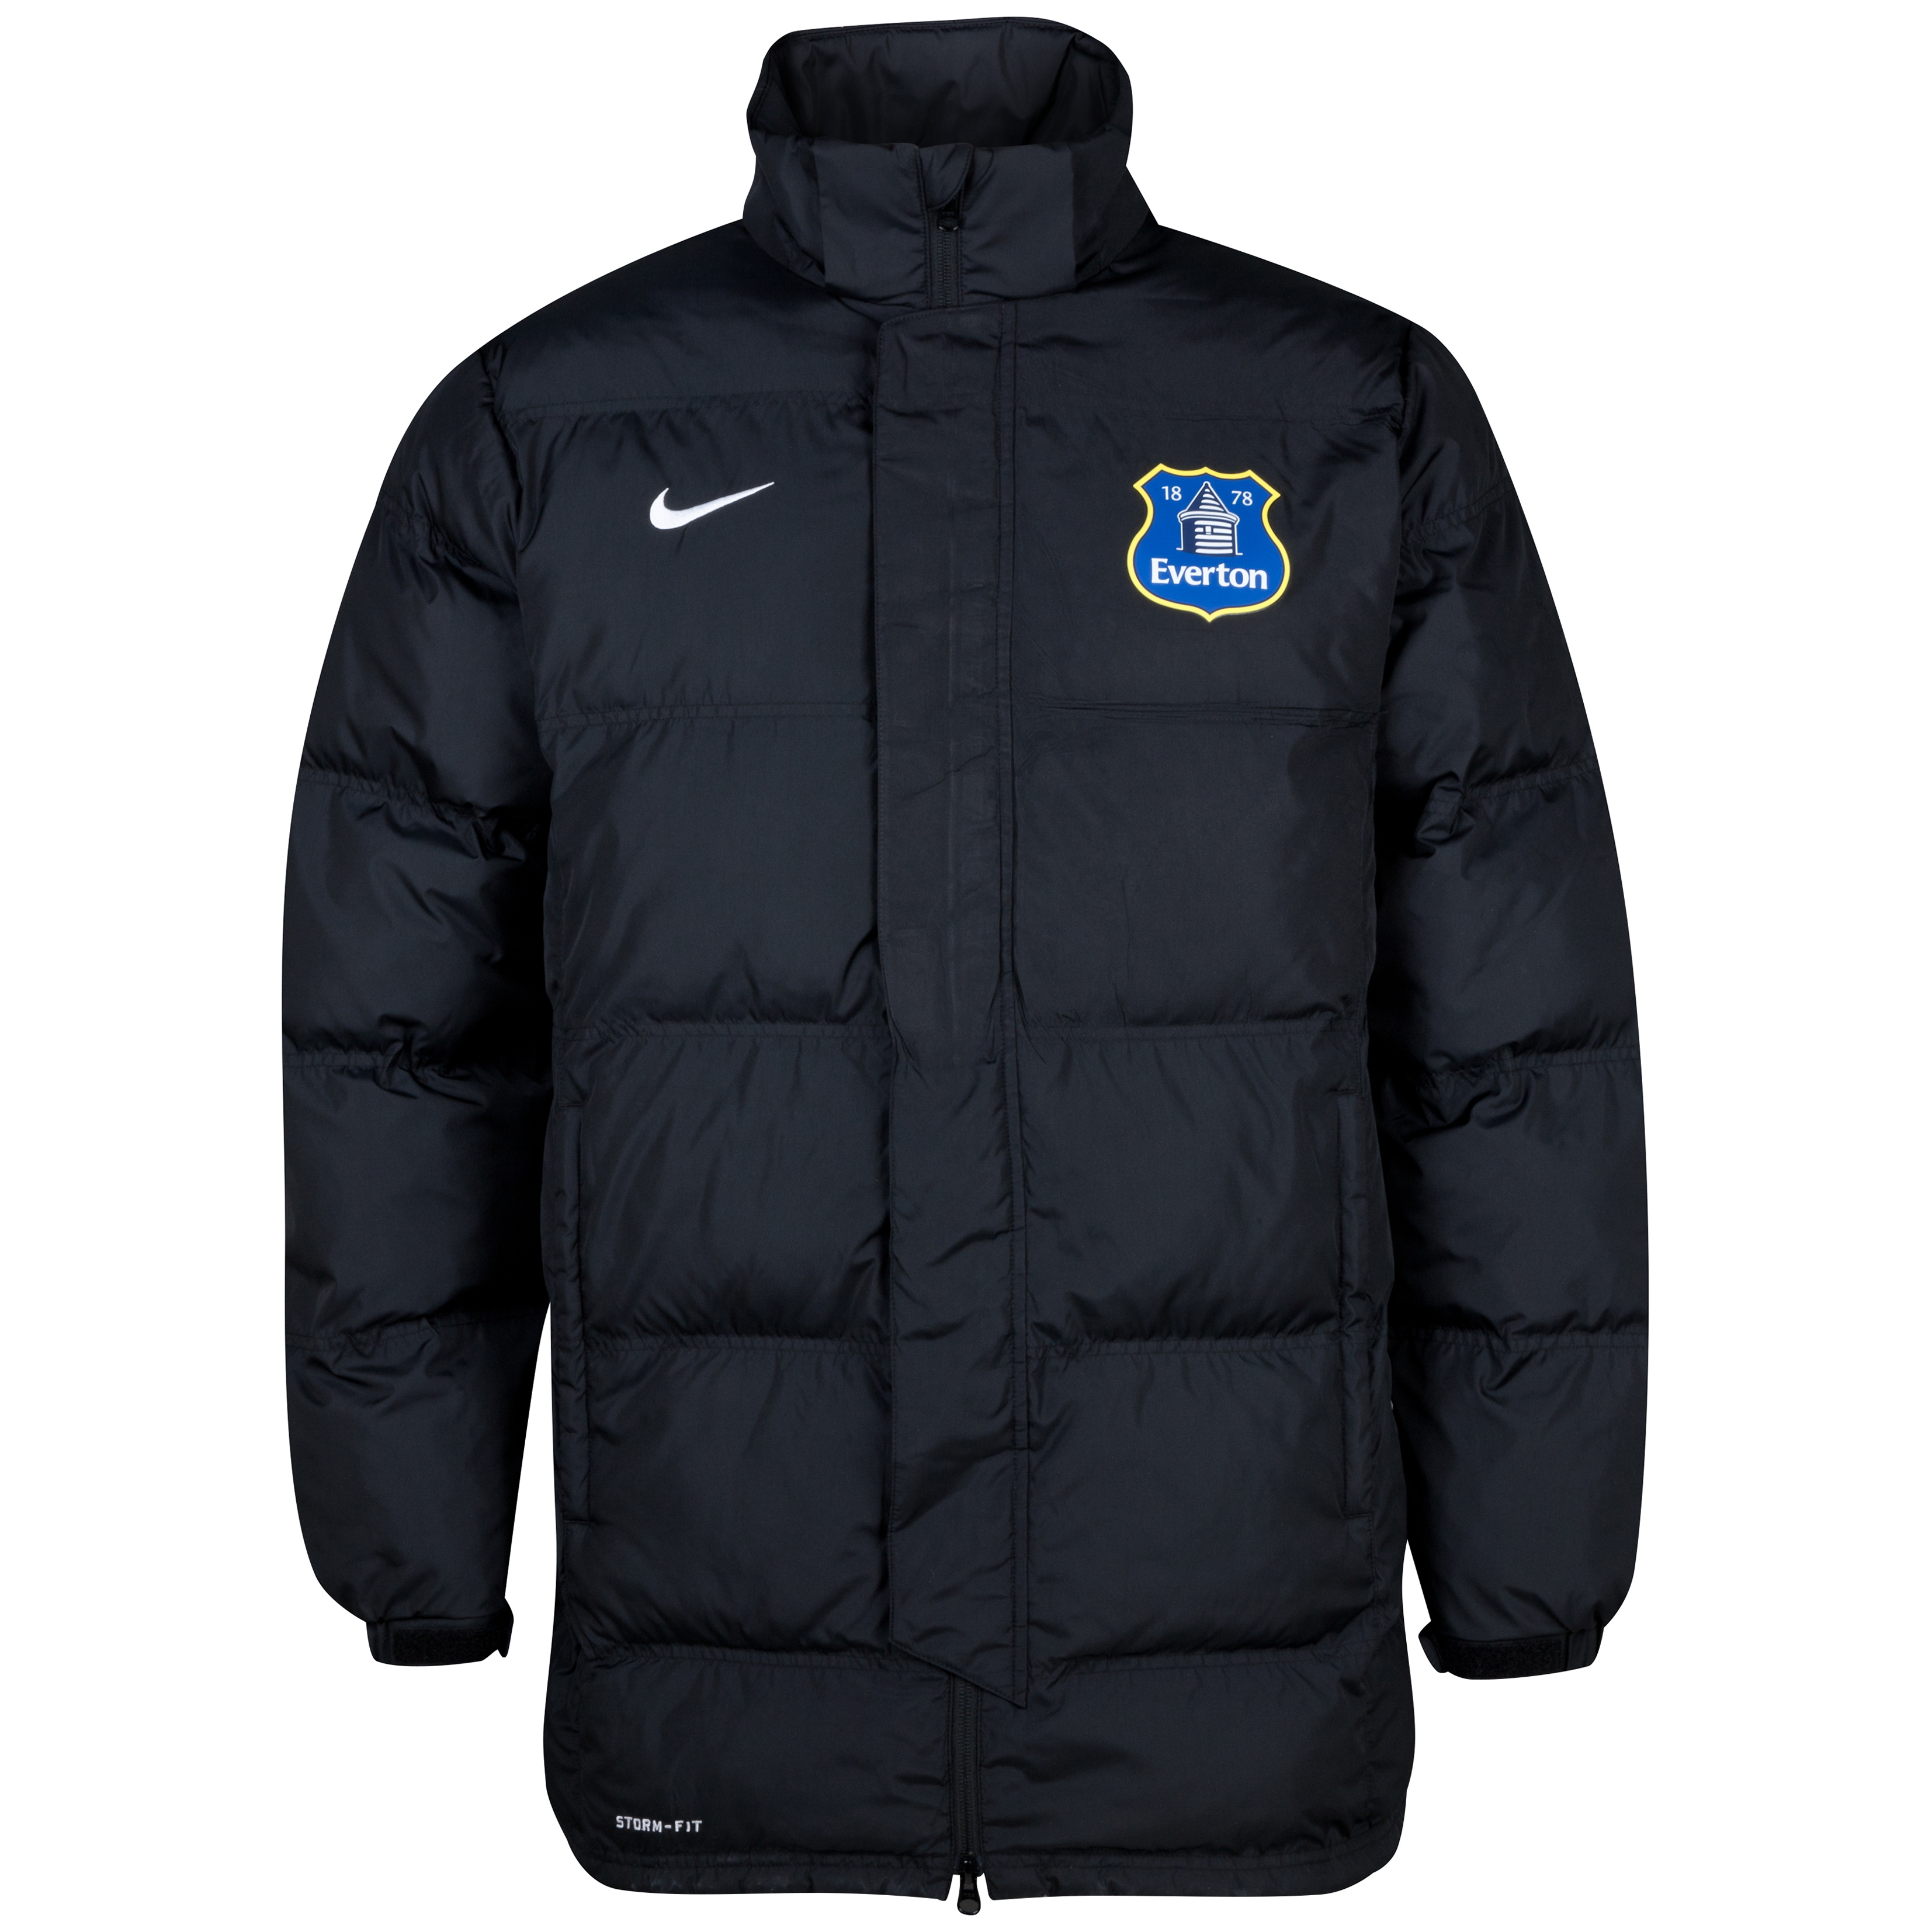 Everton Padded Jacket Black